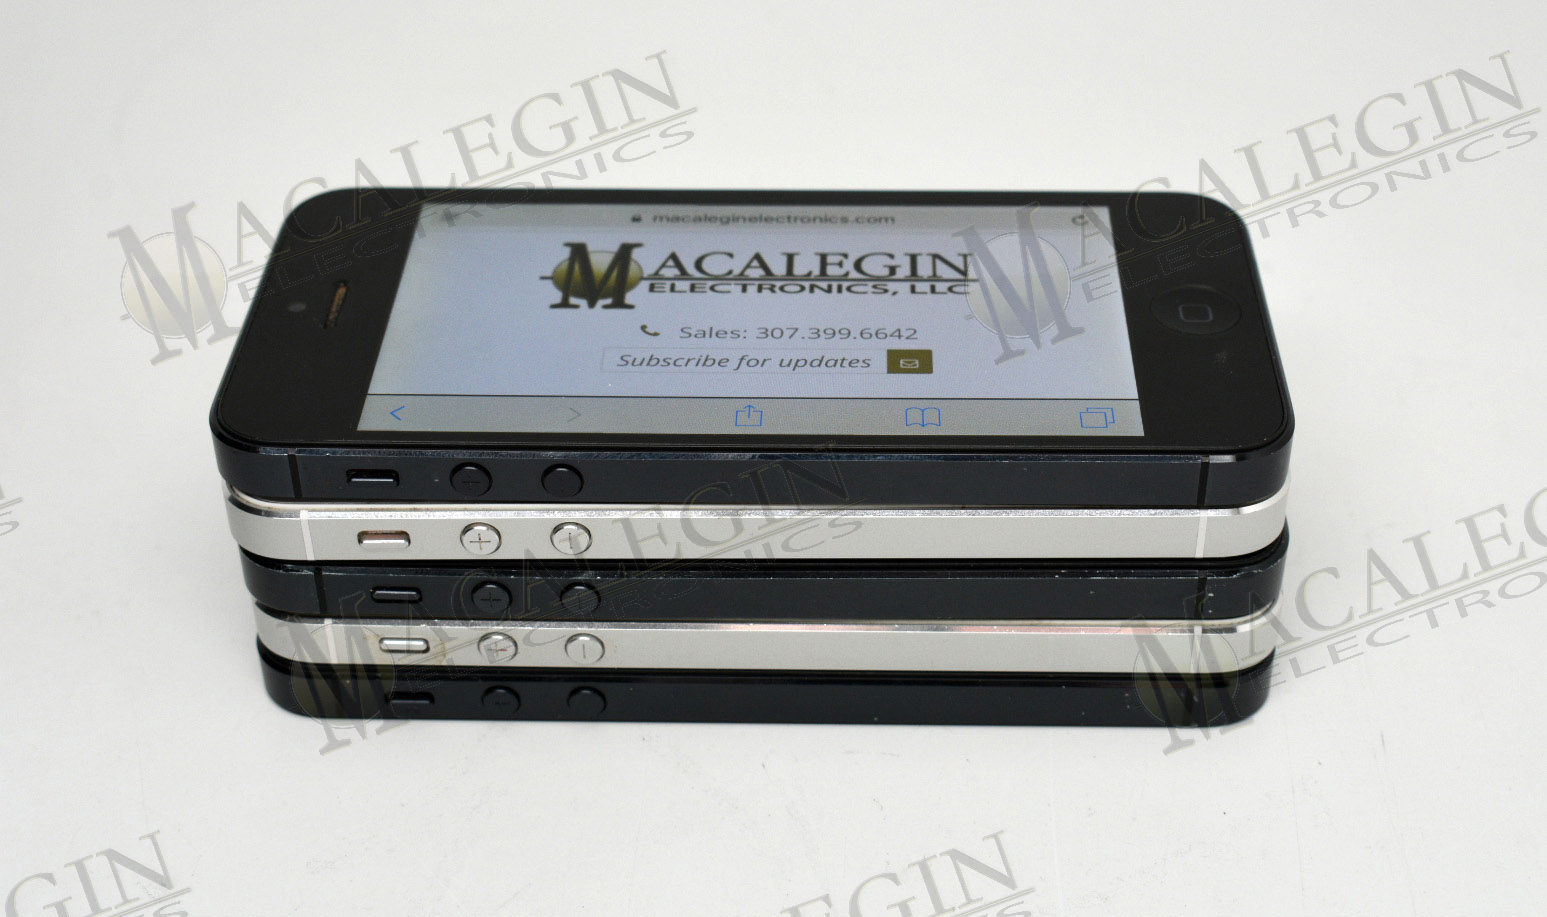 Used APPLE A1428 IPHONE 5 16GB UNLOCKED in PGL condition for sale from Macalegin Electronics at $45 a piece.